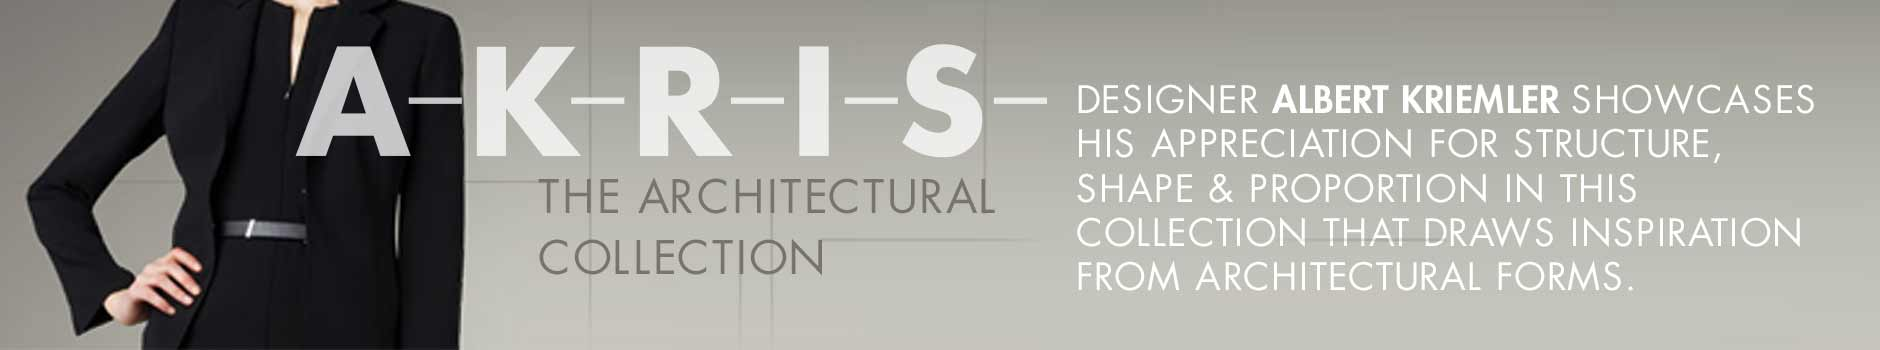 Akris: The Architectural Collection